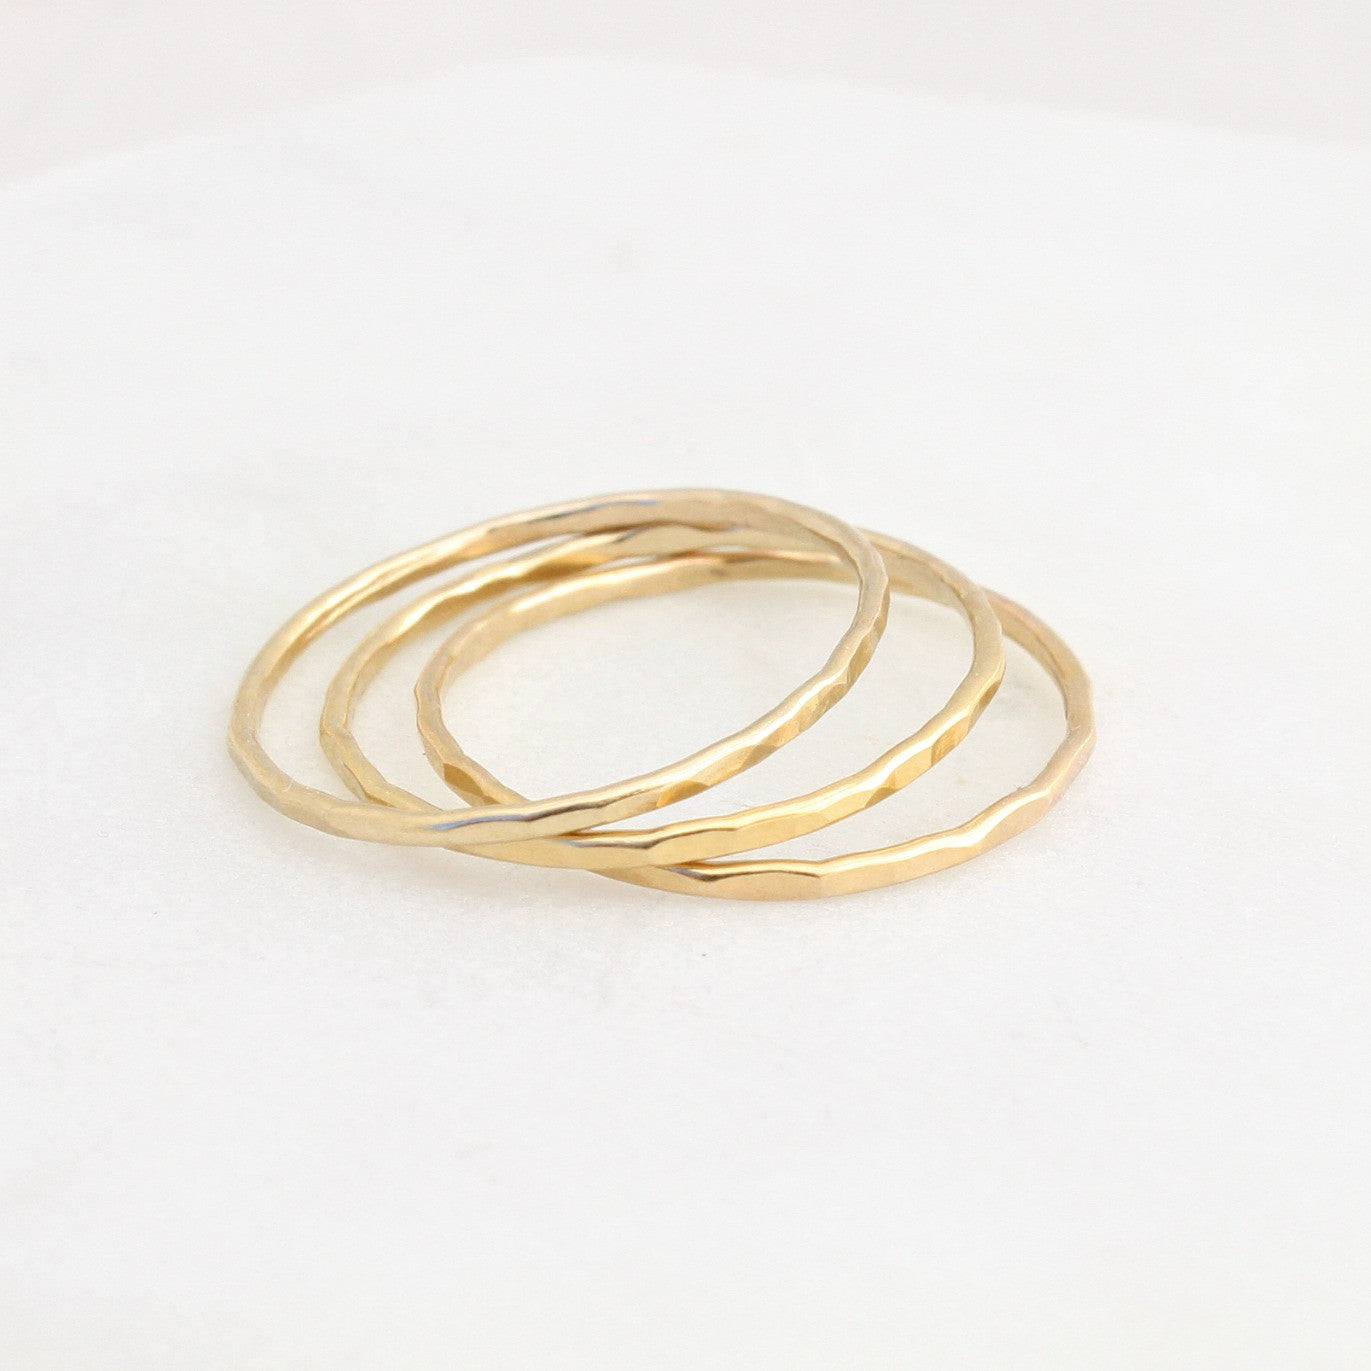 8a3d38e8a Triple Stack Skinny Hammered Rings - Sterling Silver / 14k Gold Filled -  Eden Zoe